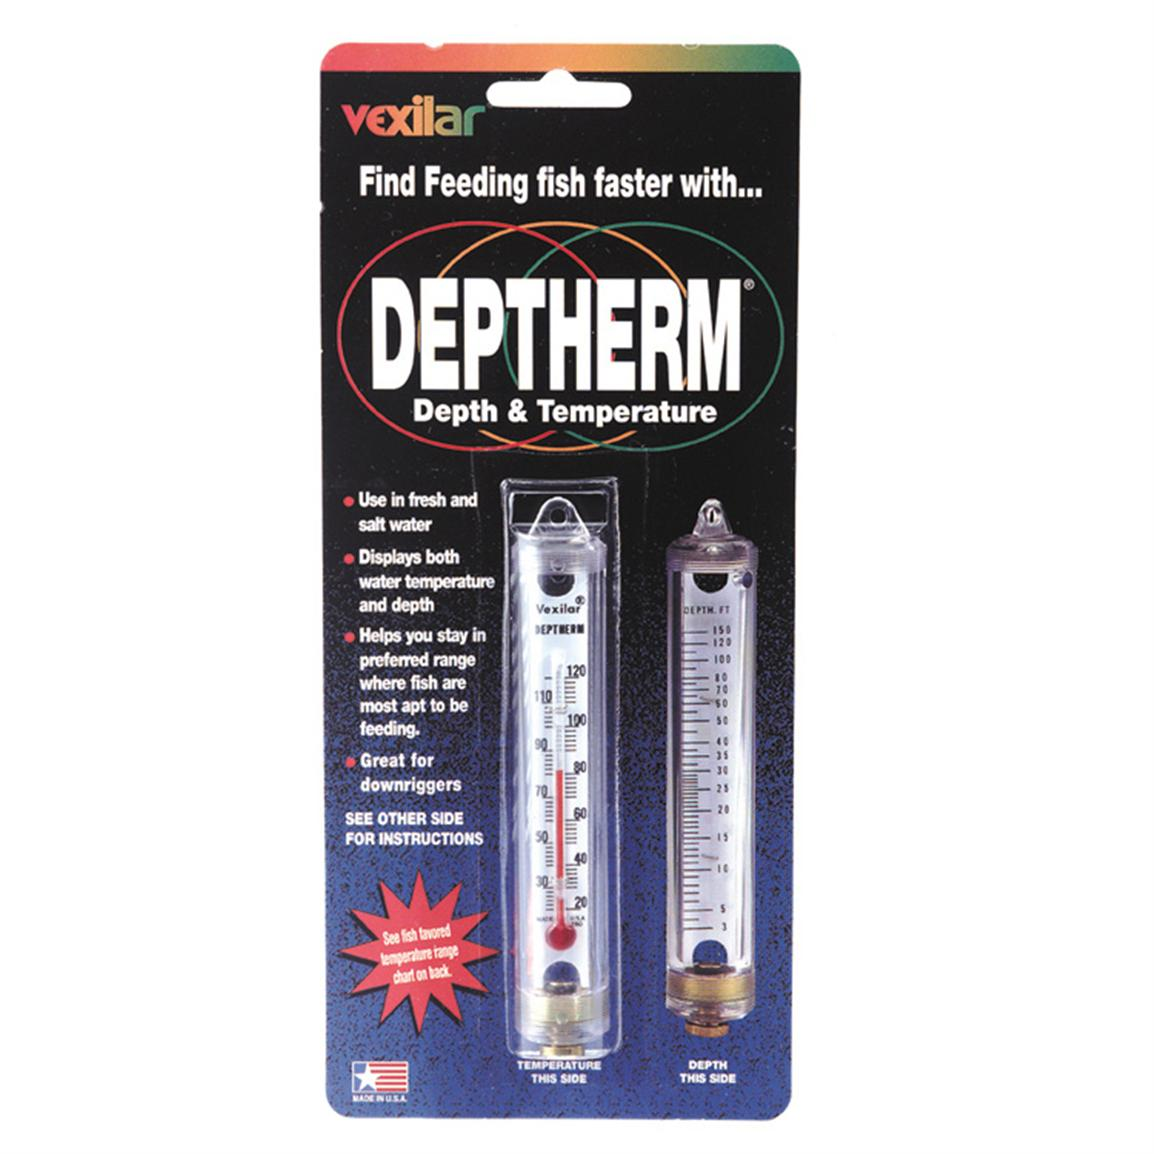 Vexilar deptherm model 104 59518 ice fishing for Ice fishing electronics